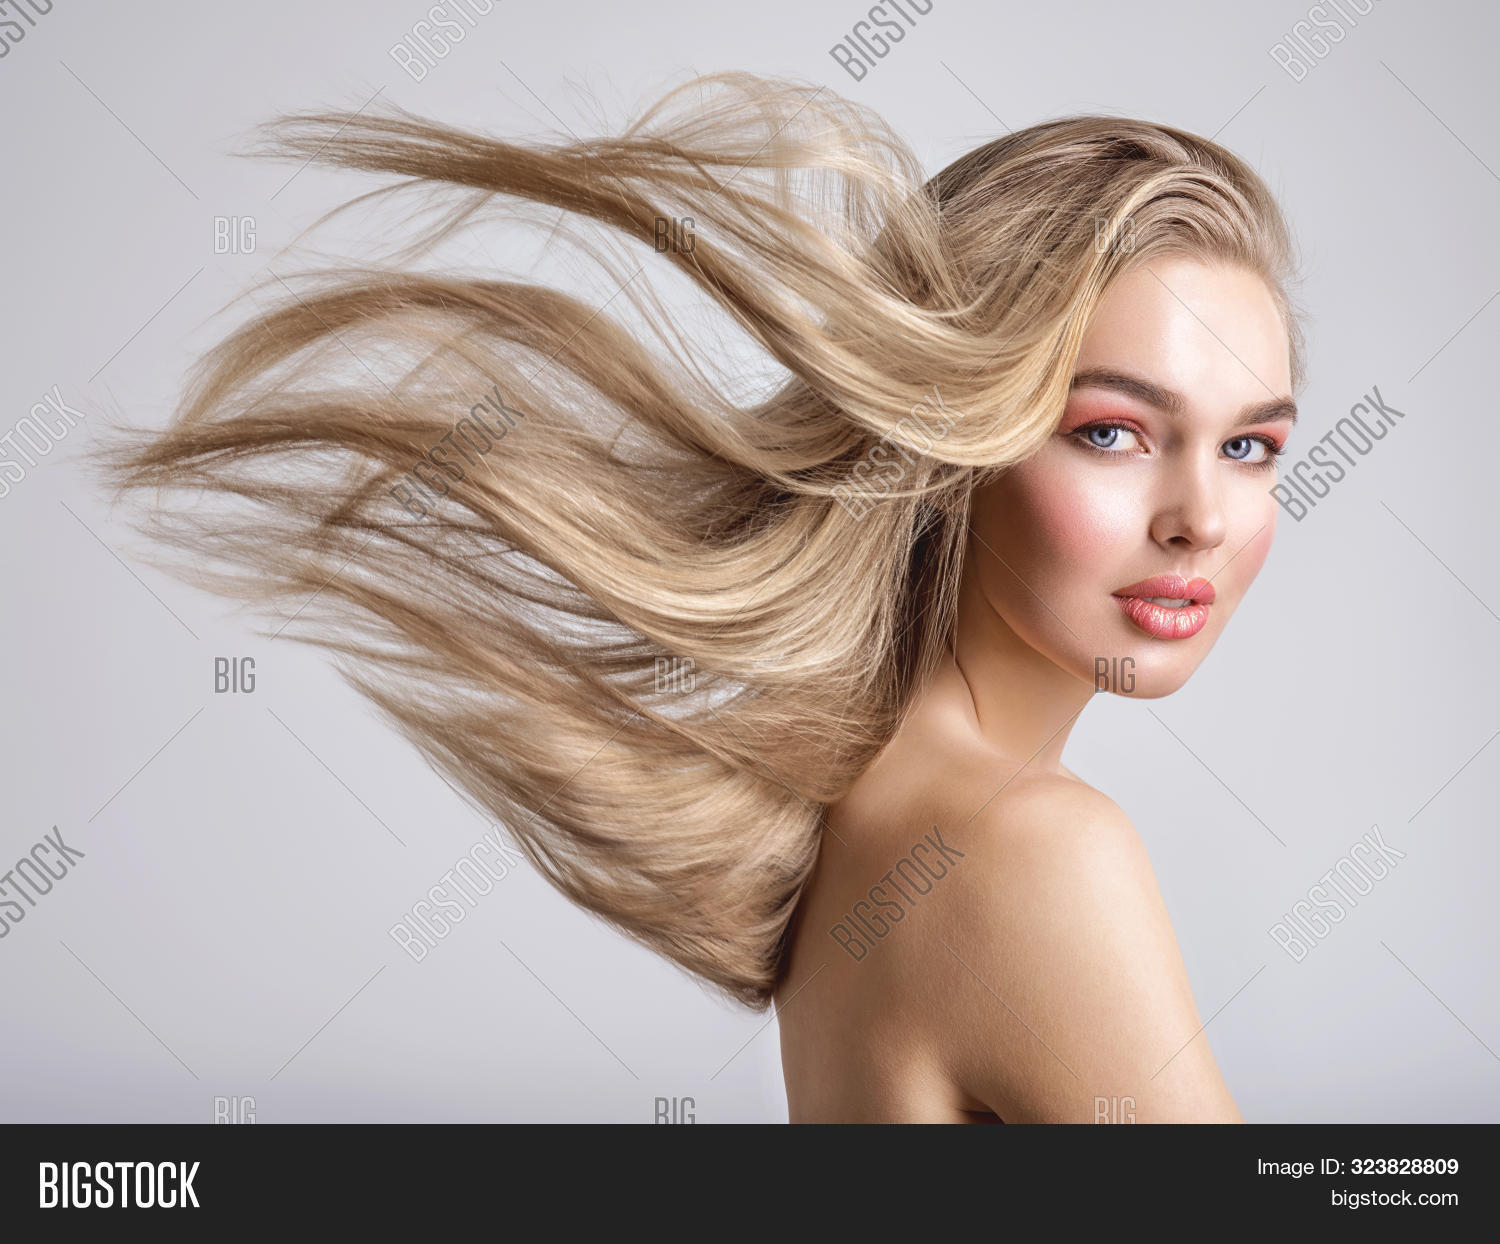 attractive,beautiful,beauty,blond,blonde,blush,caucasian,color,coral,cute,face,fashion,female,fluttering,flying hair,girl,glamour,gorgeous,hair,hairstyle,human,lady,long,long hair,makeup,model,move,one,people,person,pink,portrait,pretty,shake,straight,straight hair,studio,stunning,style,white,wind,woman,young